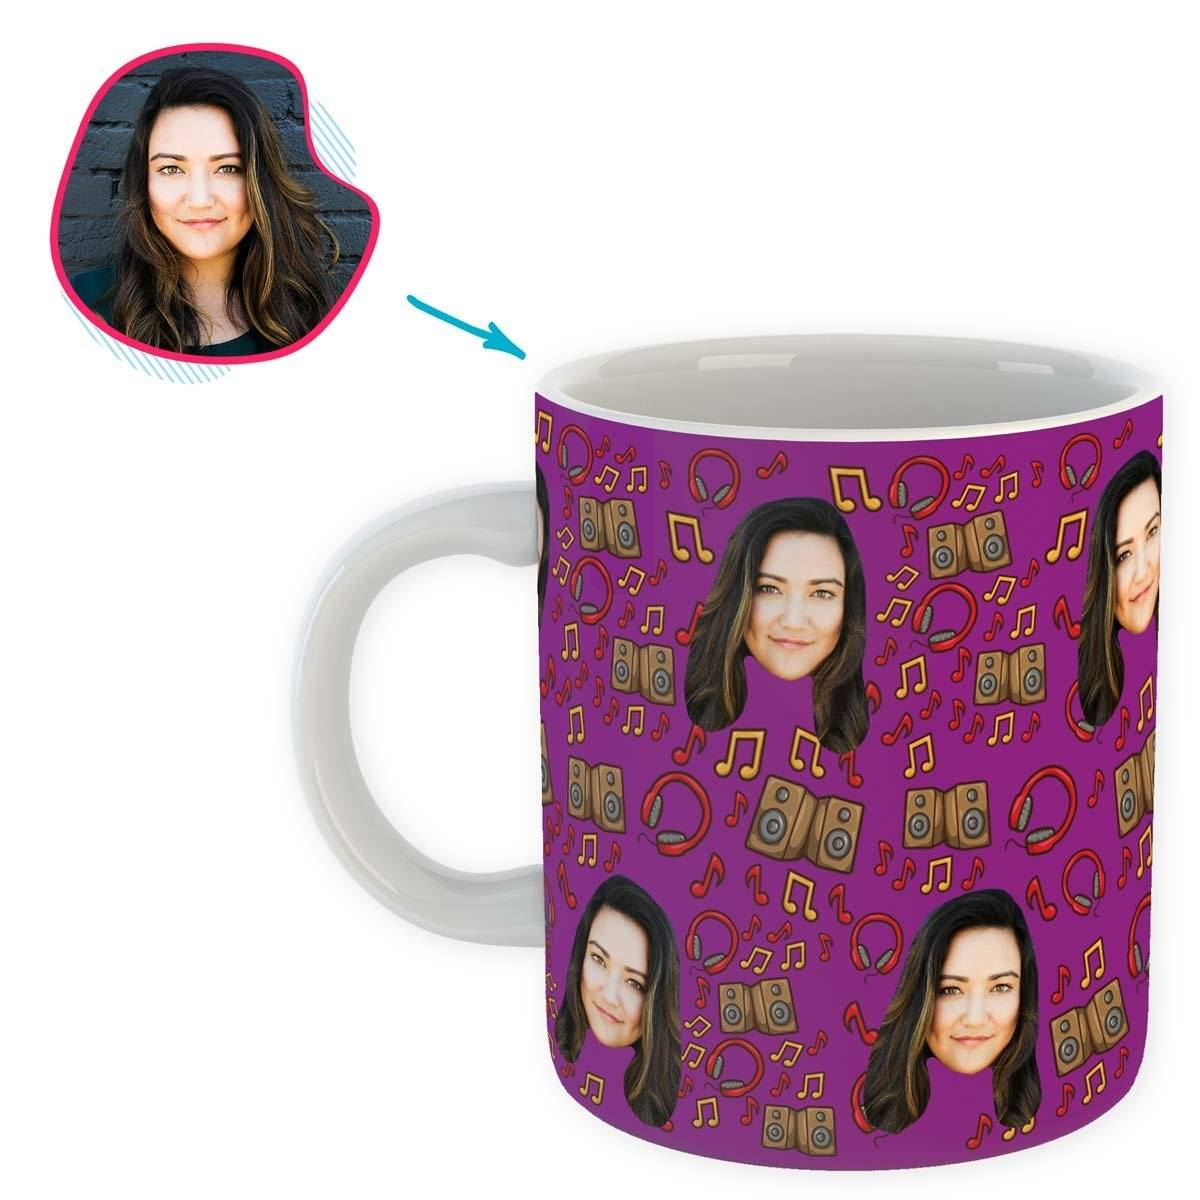 purple Music mug personalized with photo of face printed on it